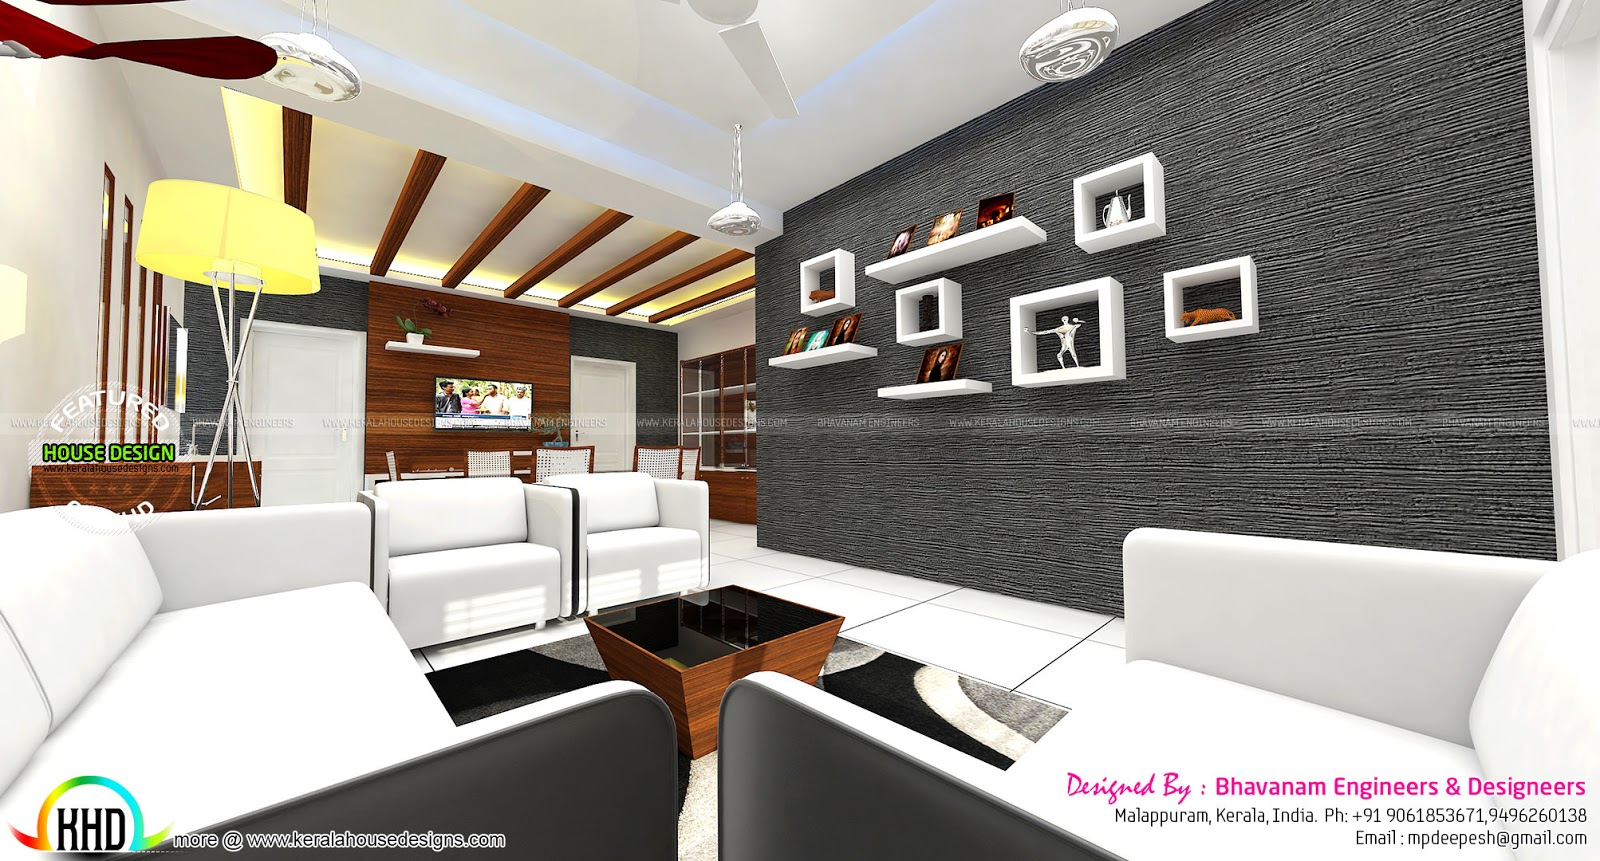 for more information of these interiors contact